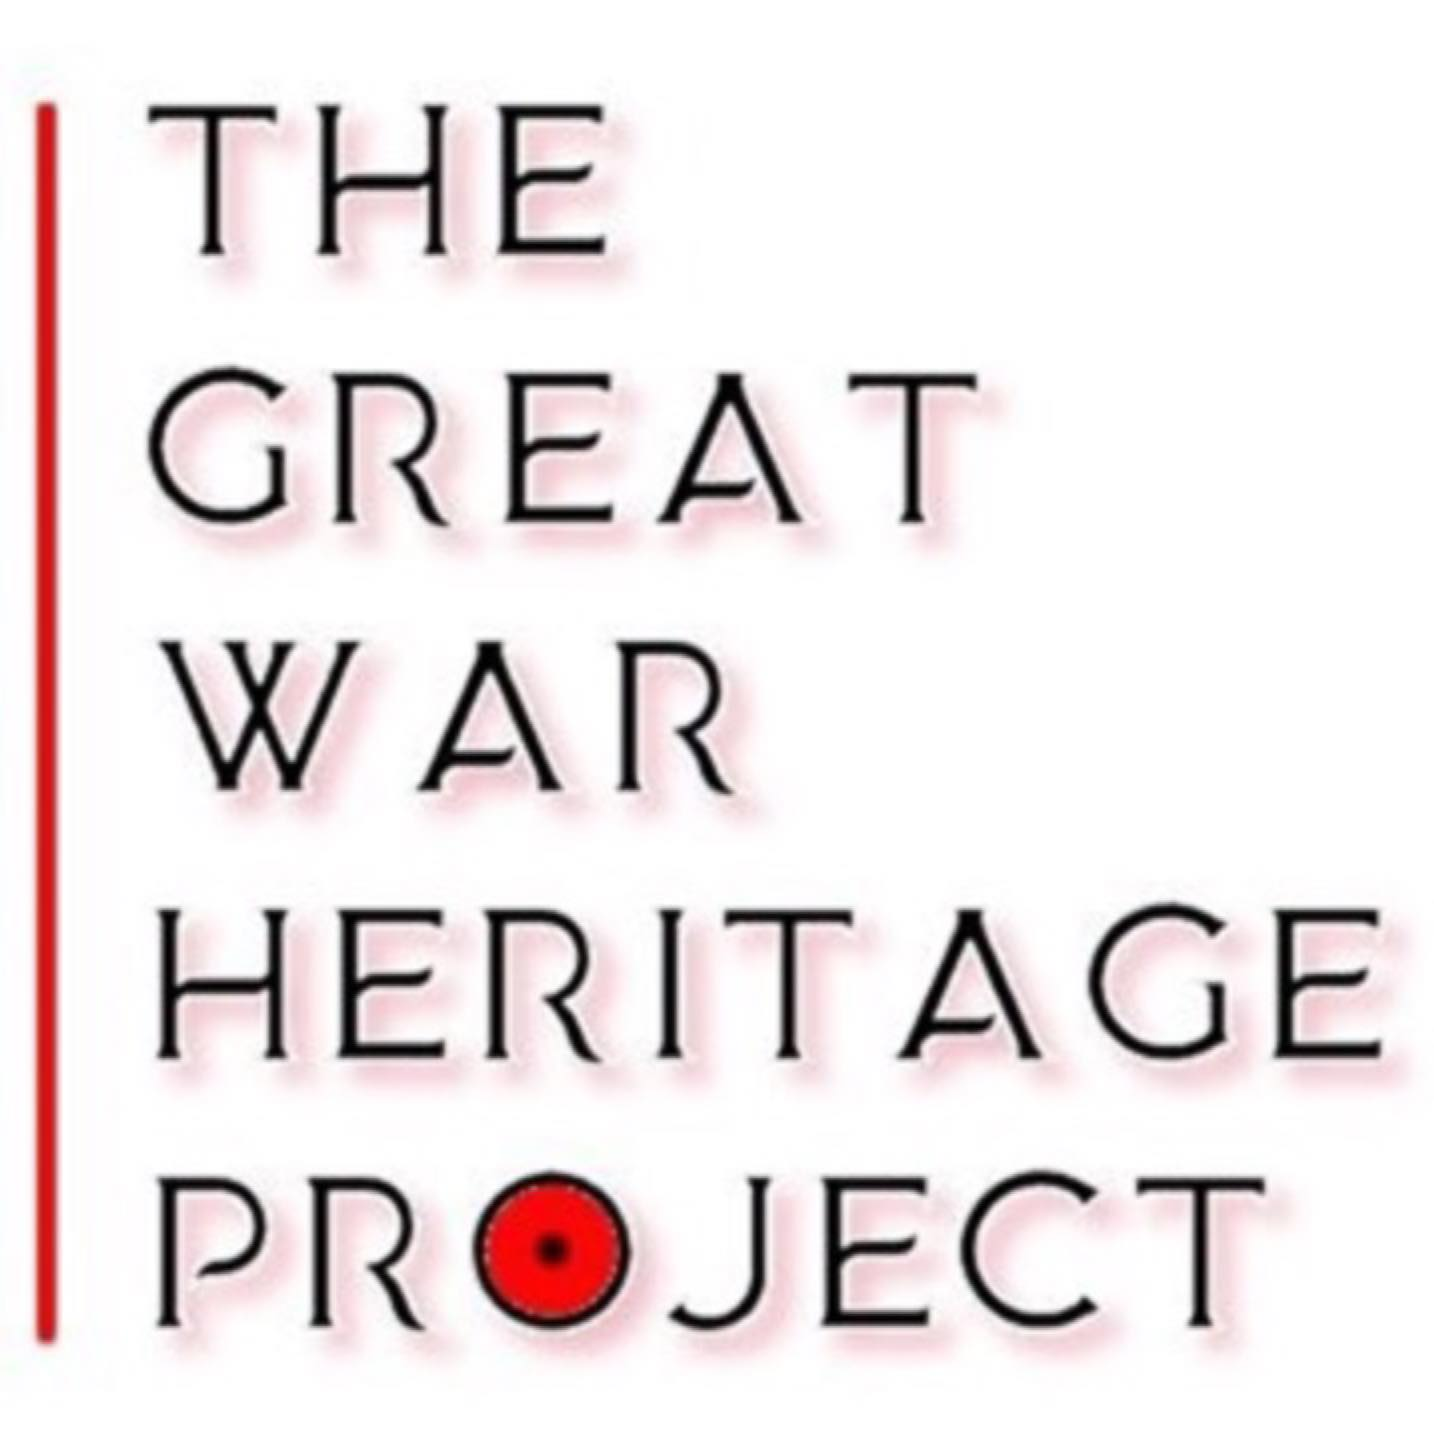 Great War Heritage Project